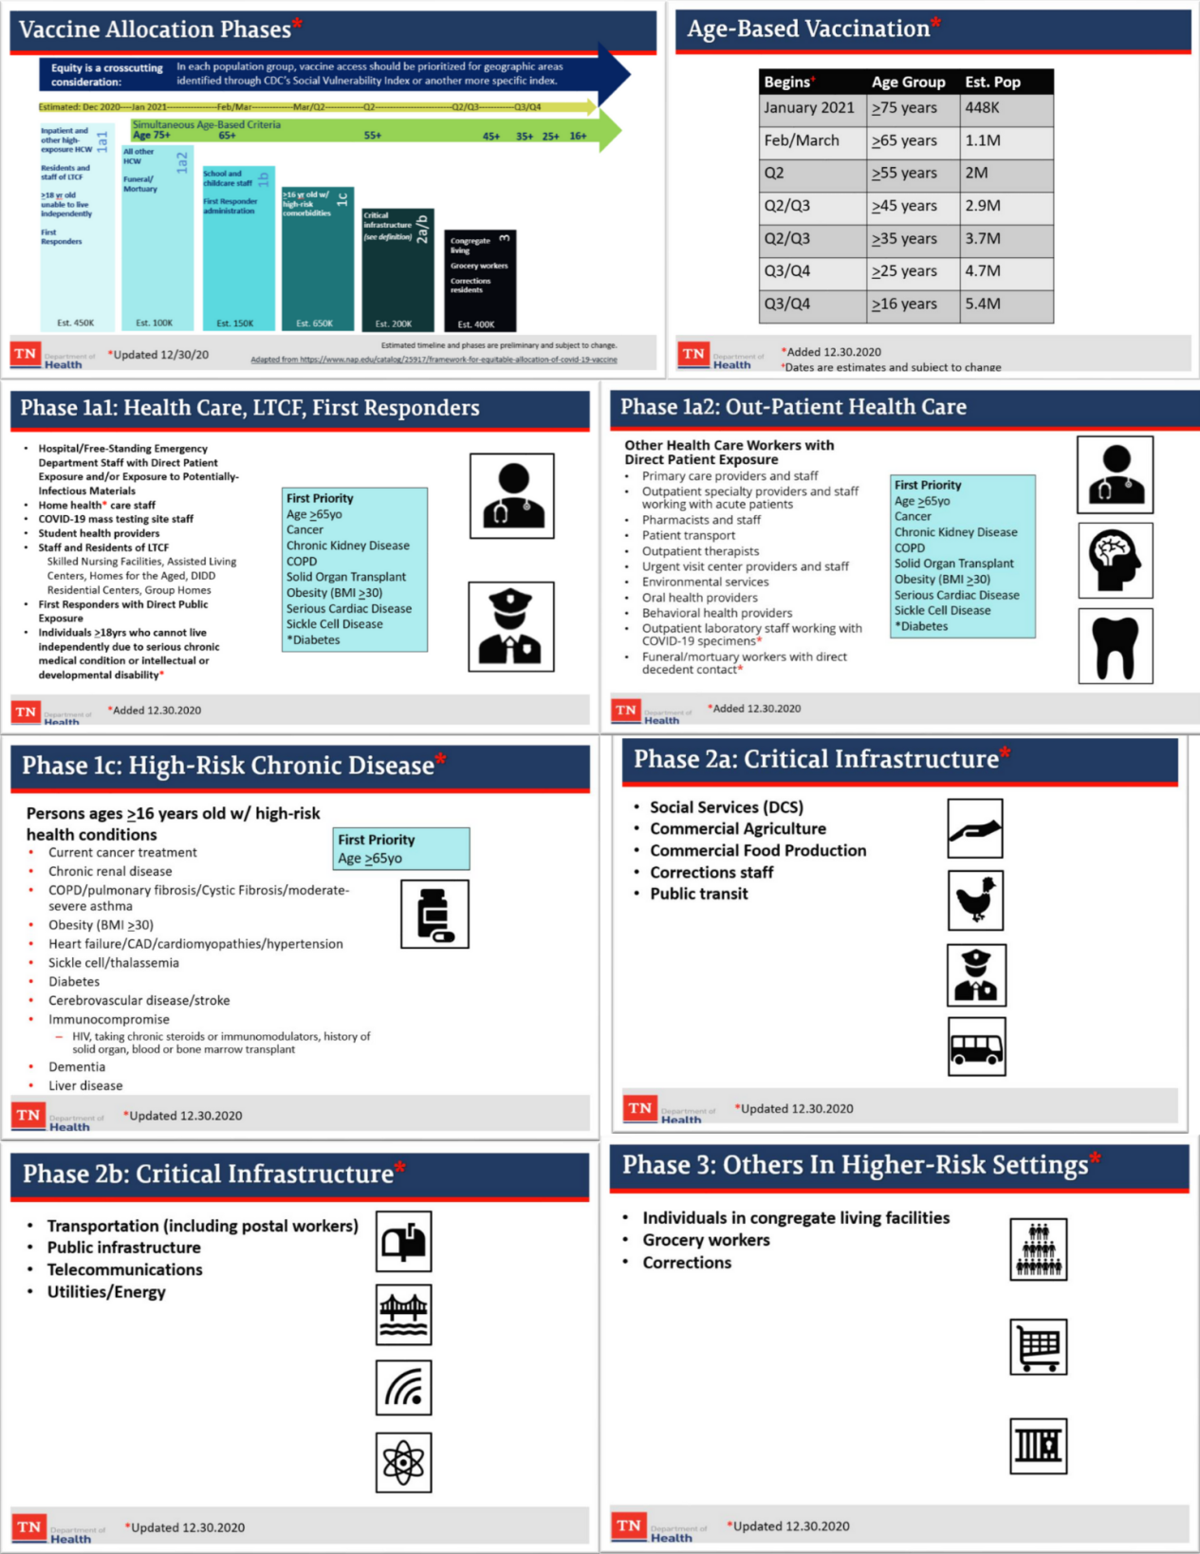 Tennessee Department of Health (TDOH) COVID-19 Vaccine Distribution Phases